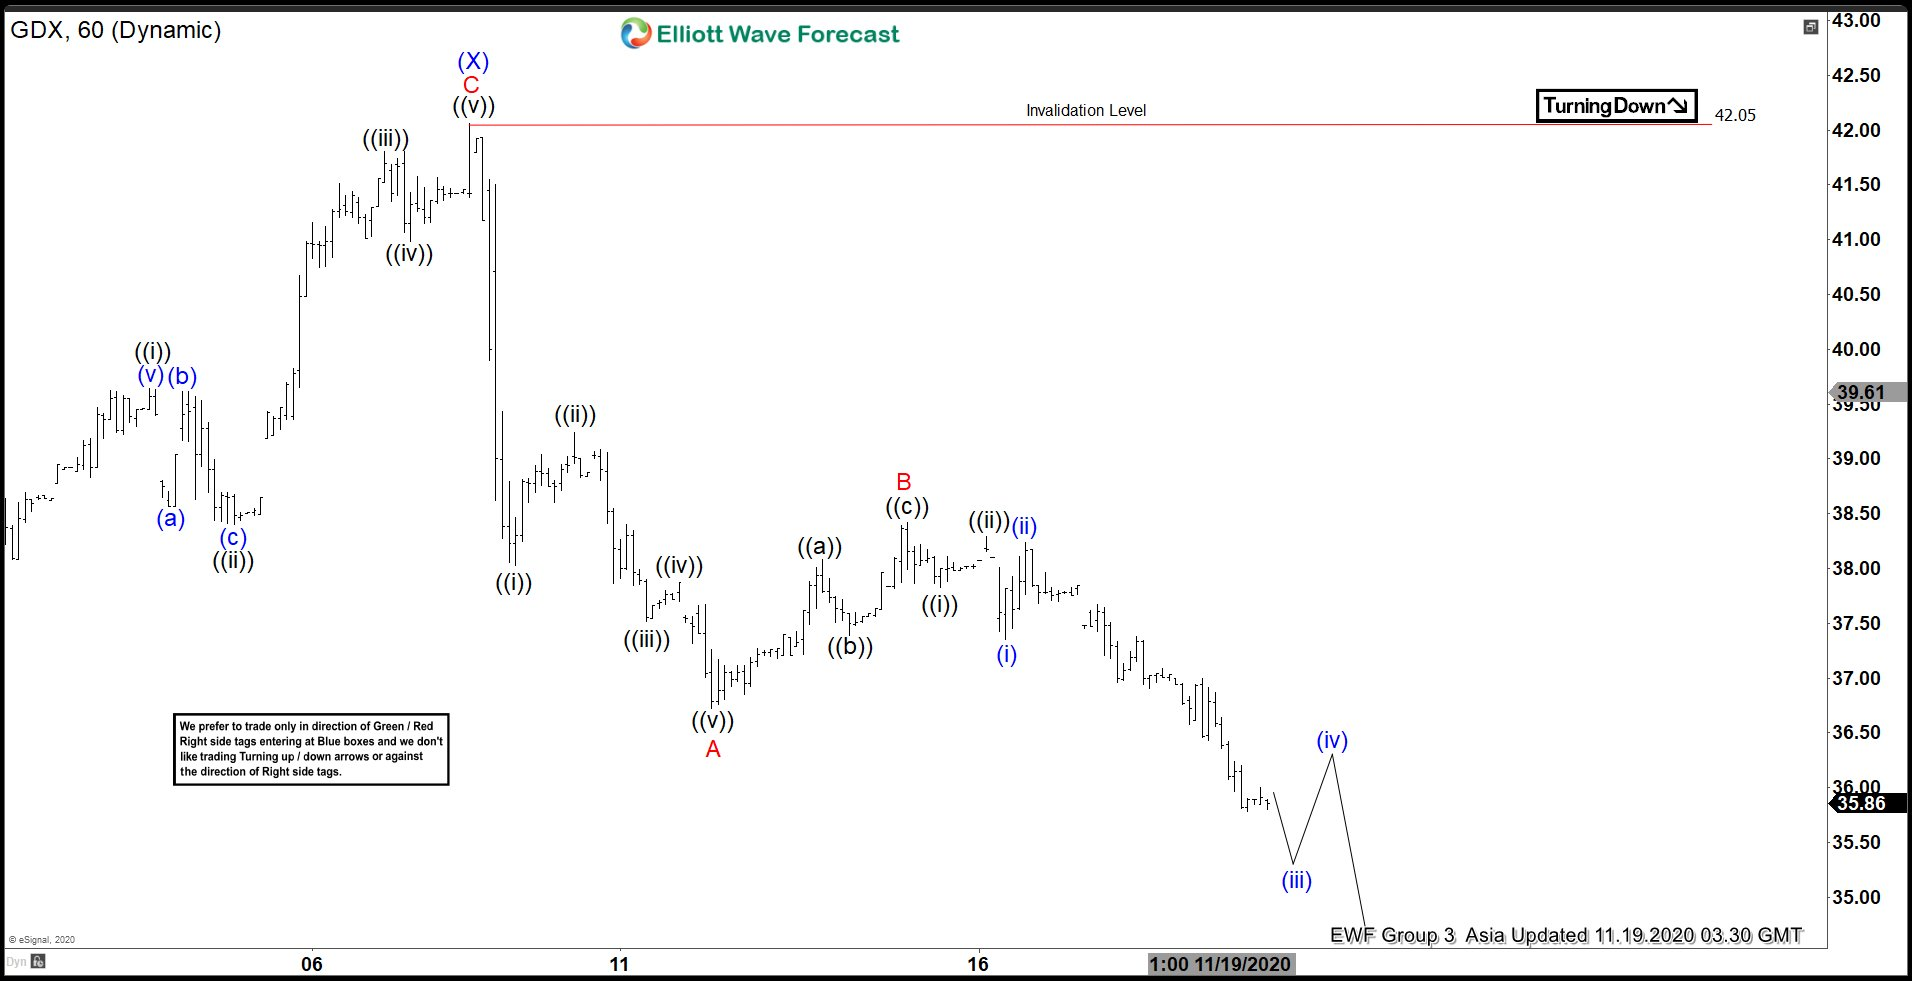 Elliott Wave View: GDX Correction Remains in Progress